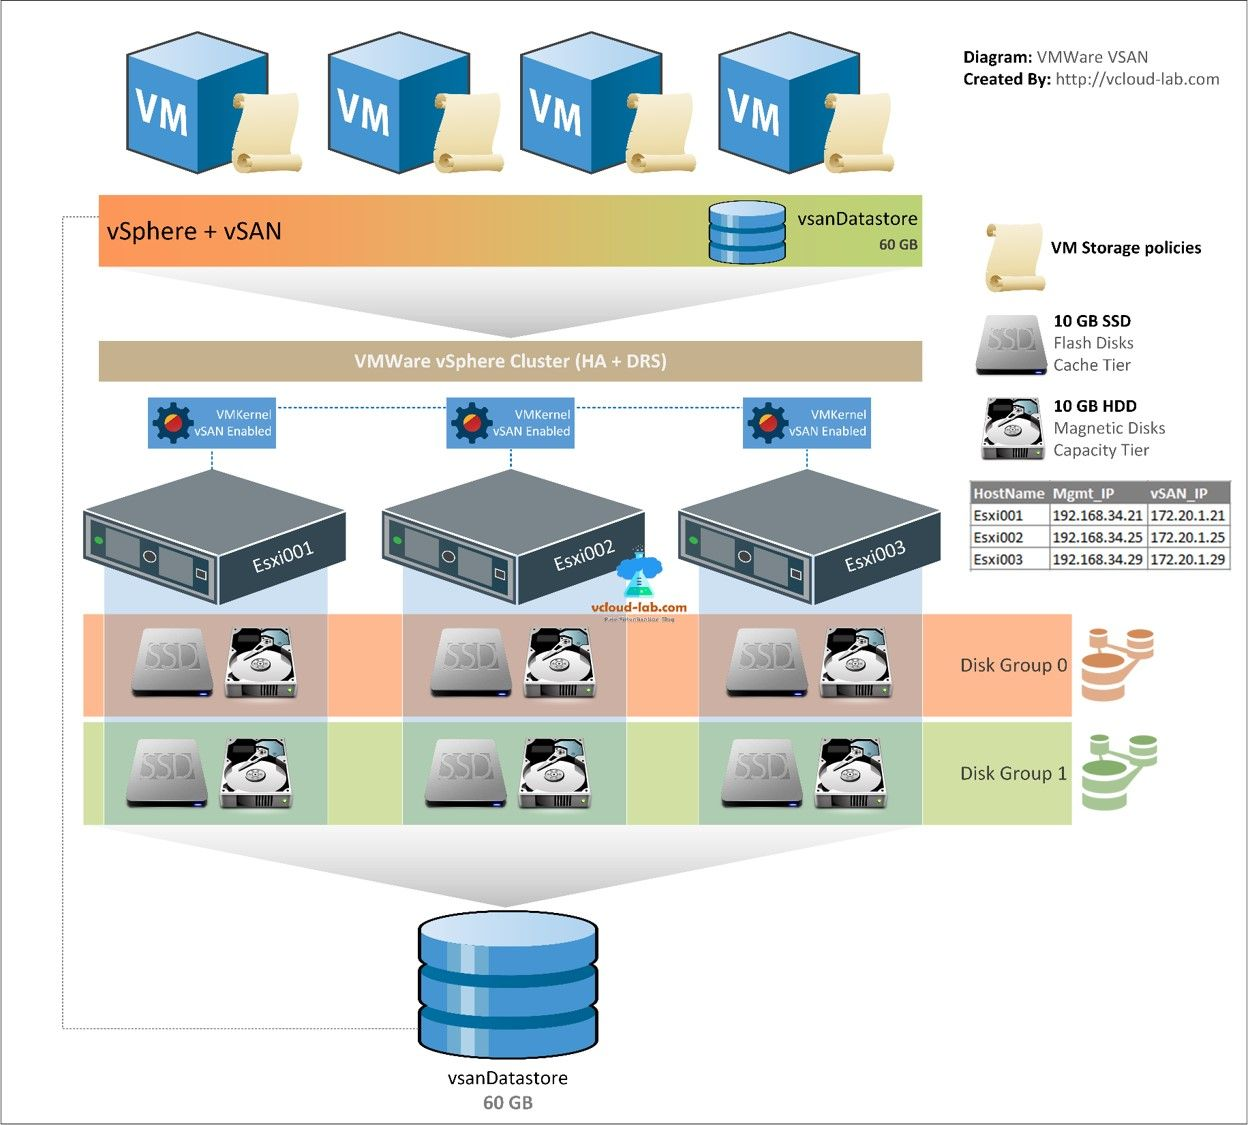 VMware VSAN, vsphere, esxi, vcenter, powercli | My Diagrams